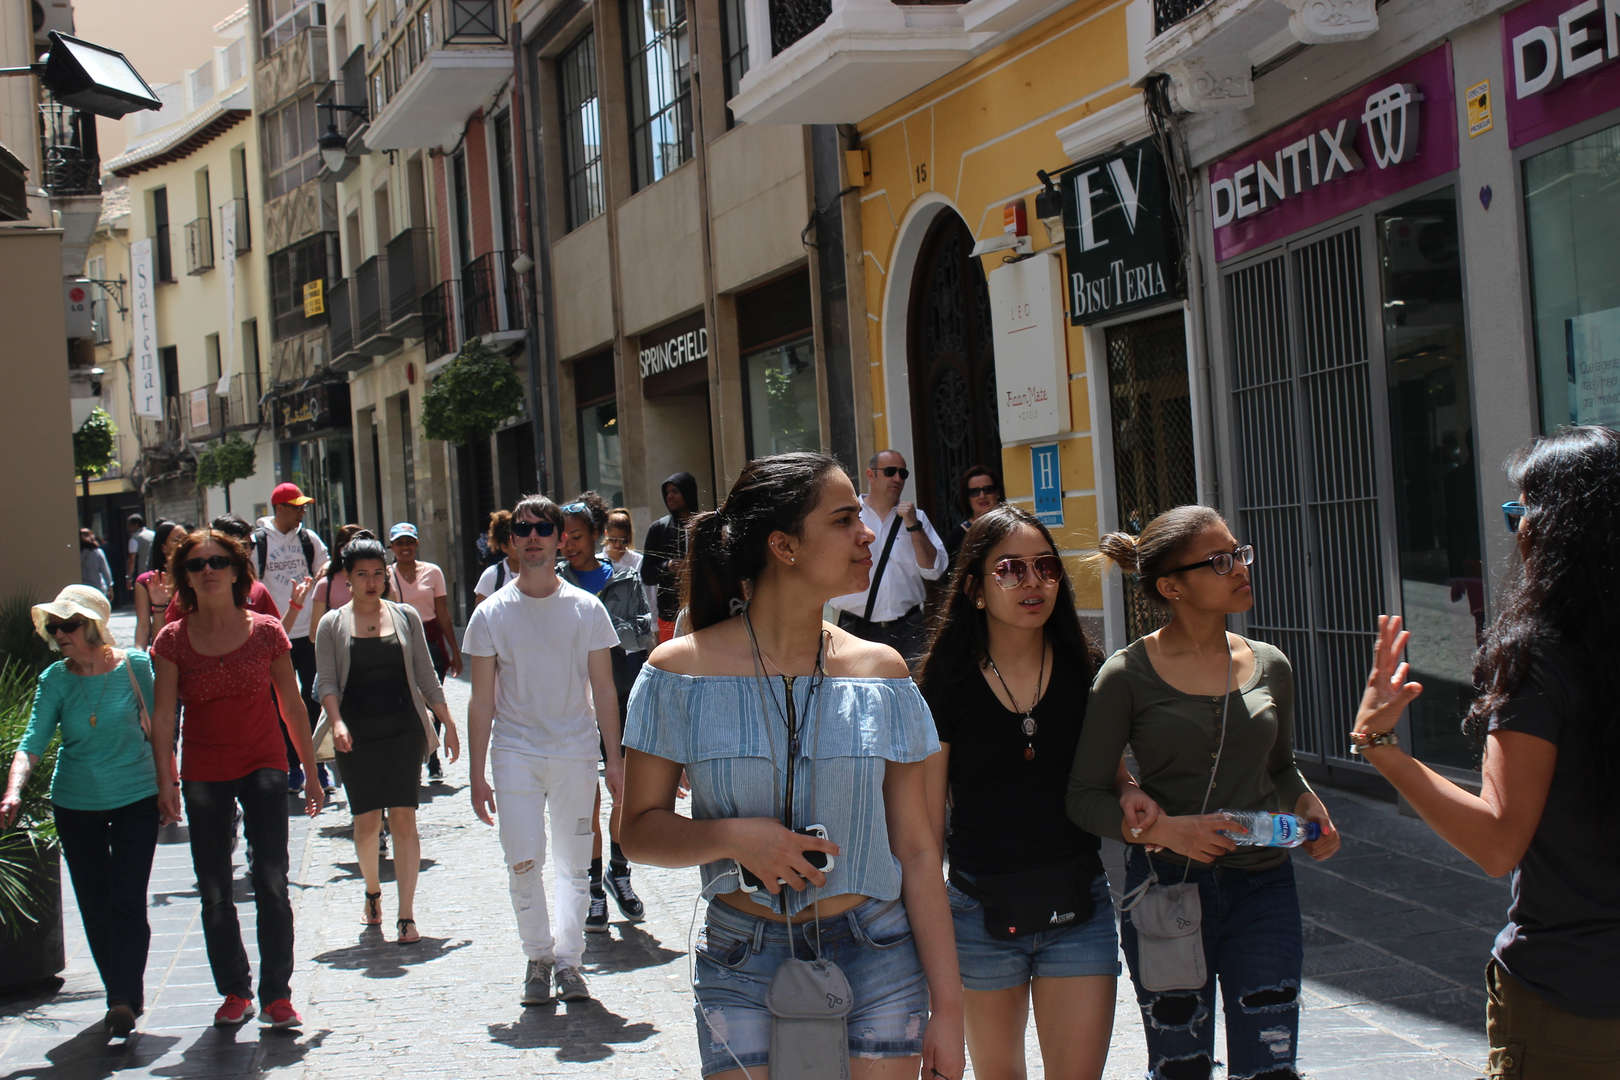 Students on trip to Spain